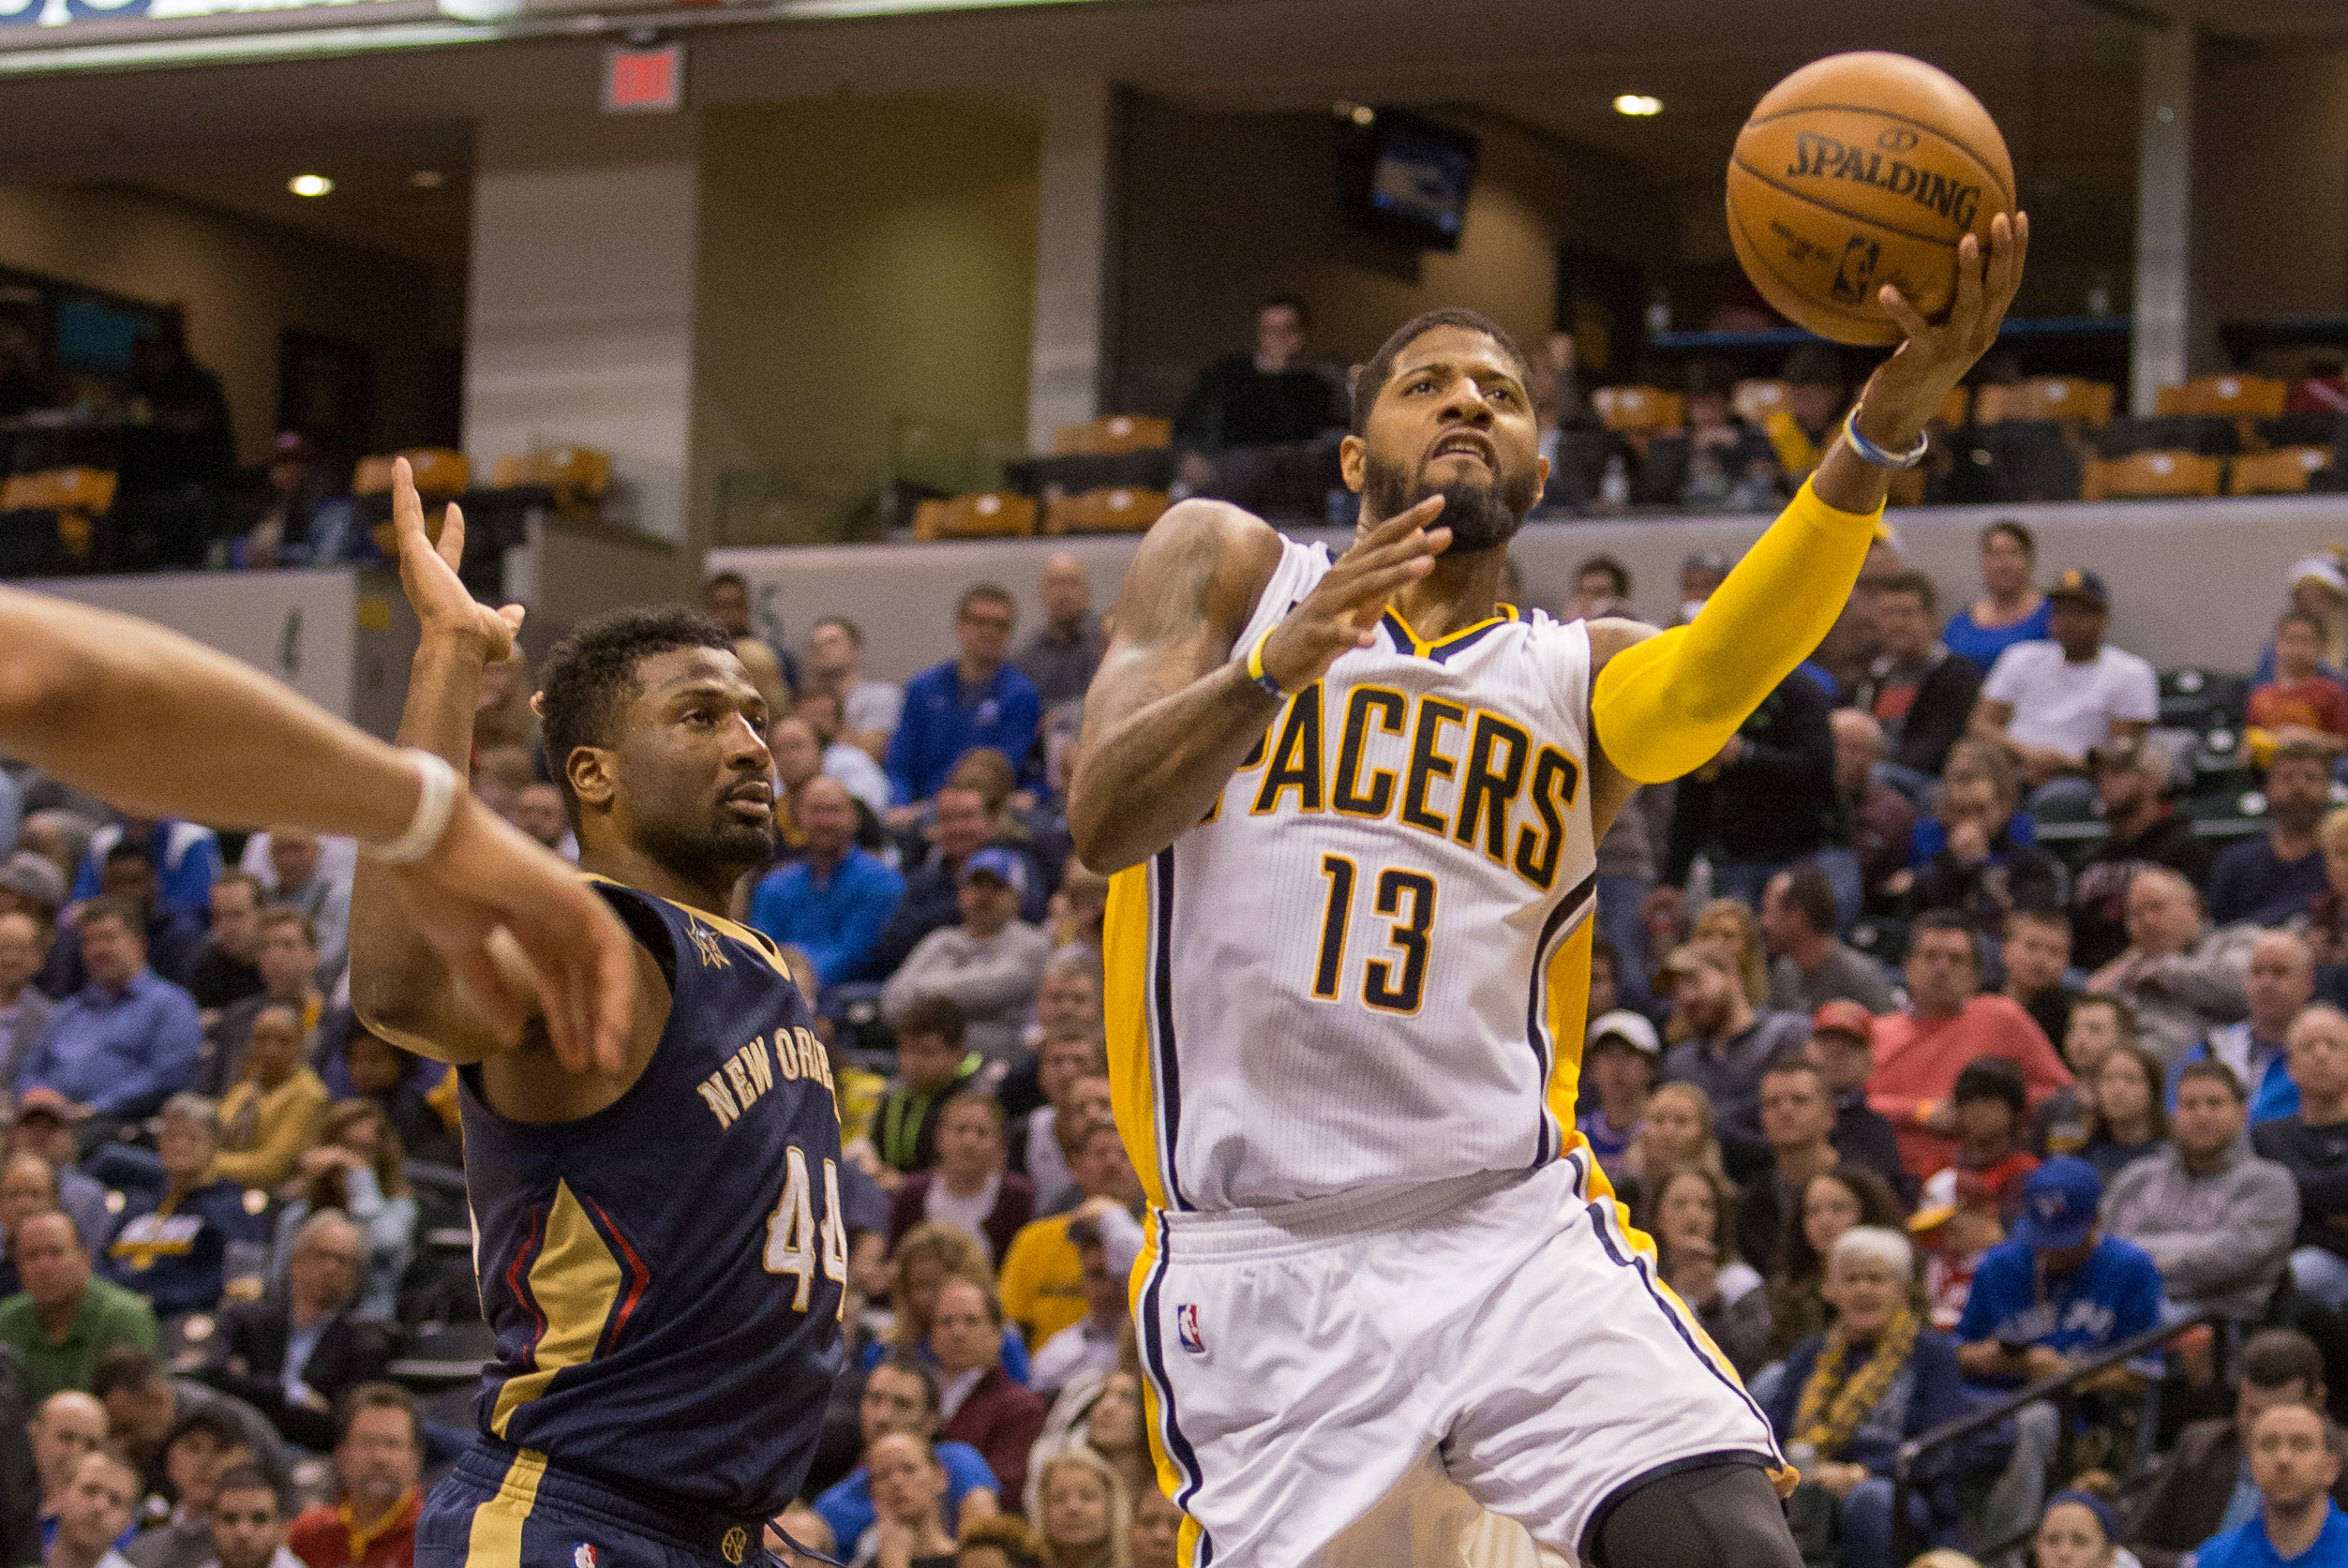 9814074-nba-new-orleans-pelicans-at-indiana-pacers